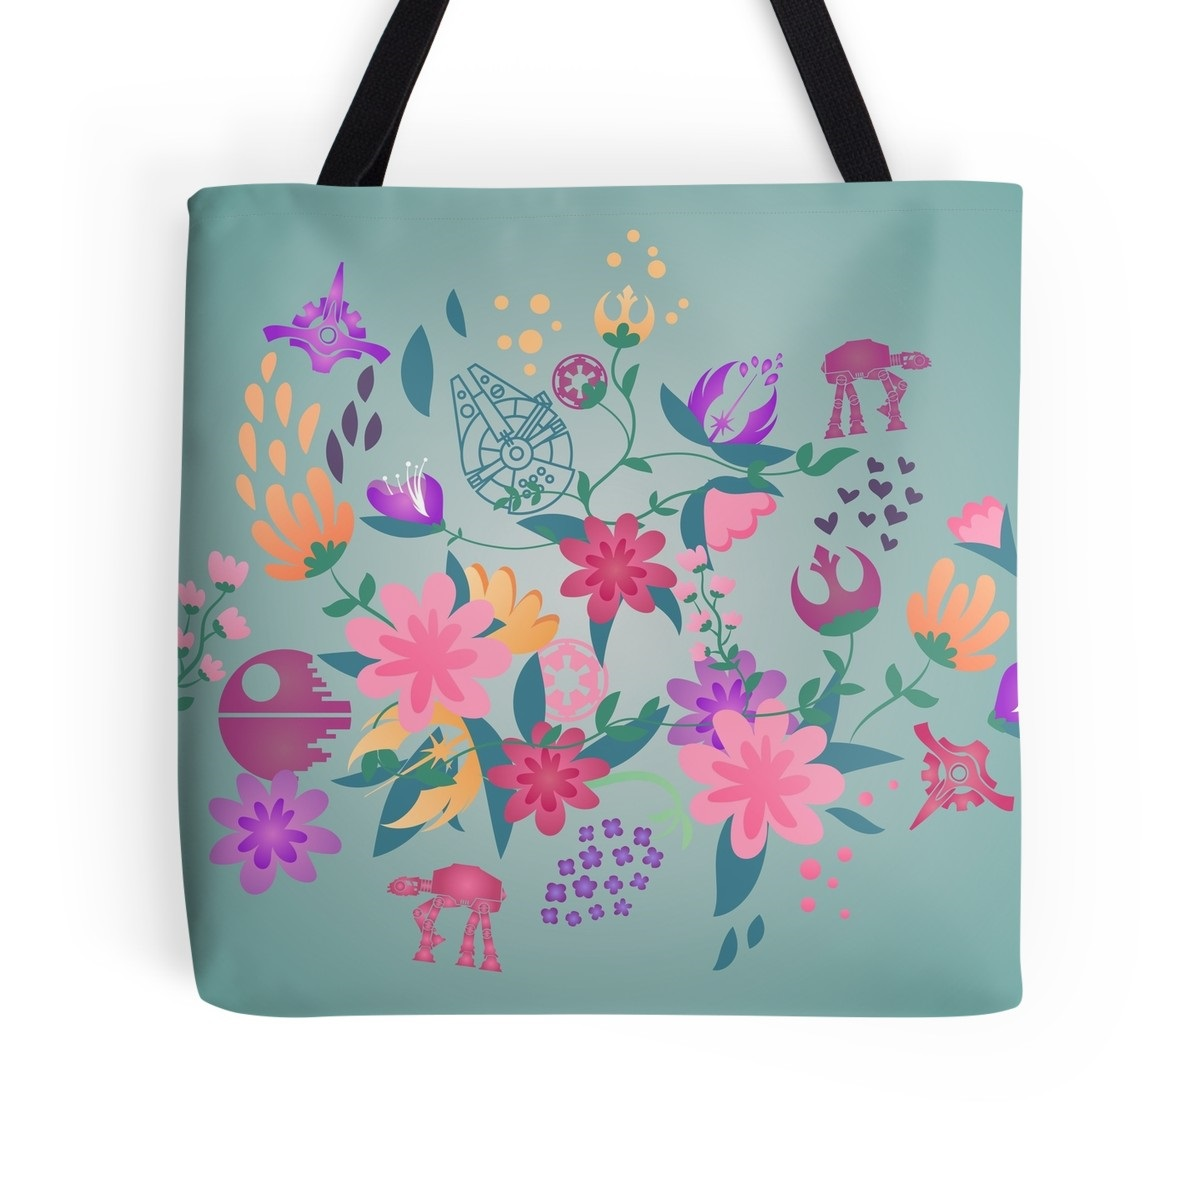 Star Wars Floral Print Tote Bag by Fashions For Fans on RedBubble